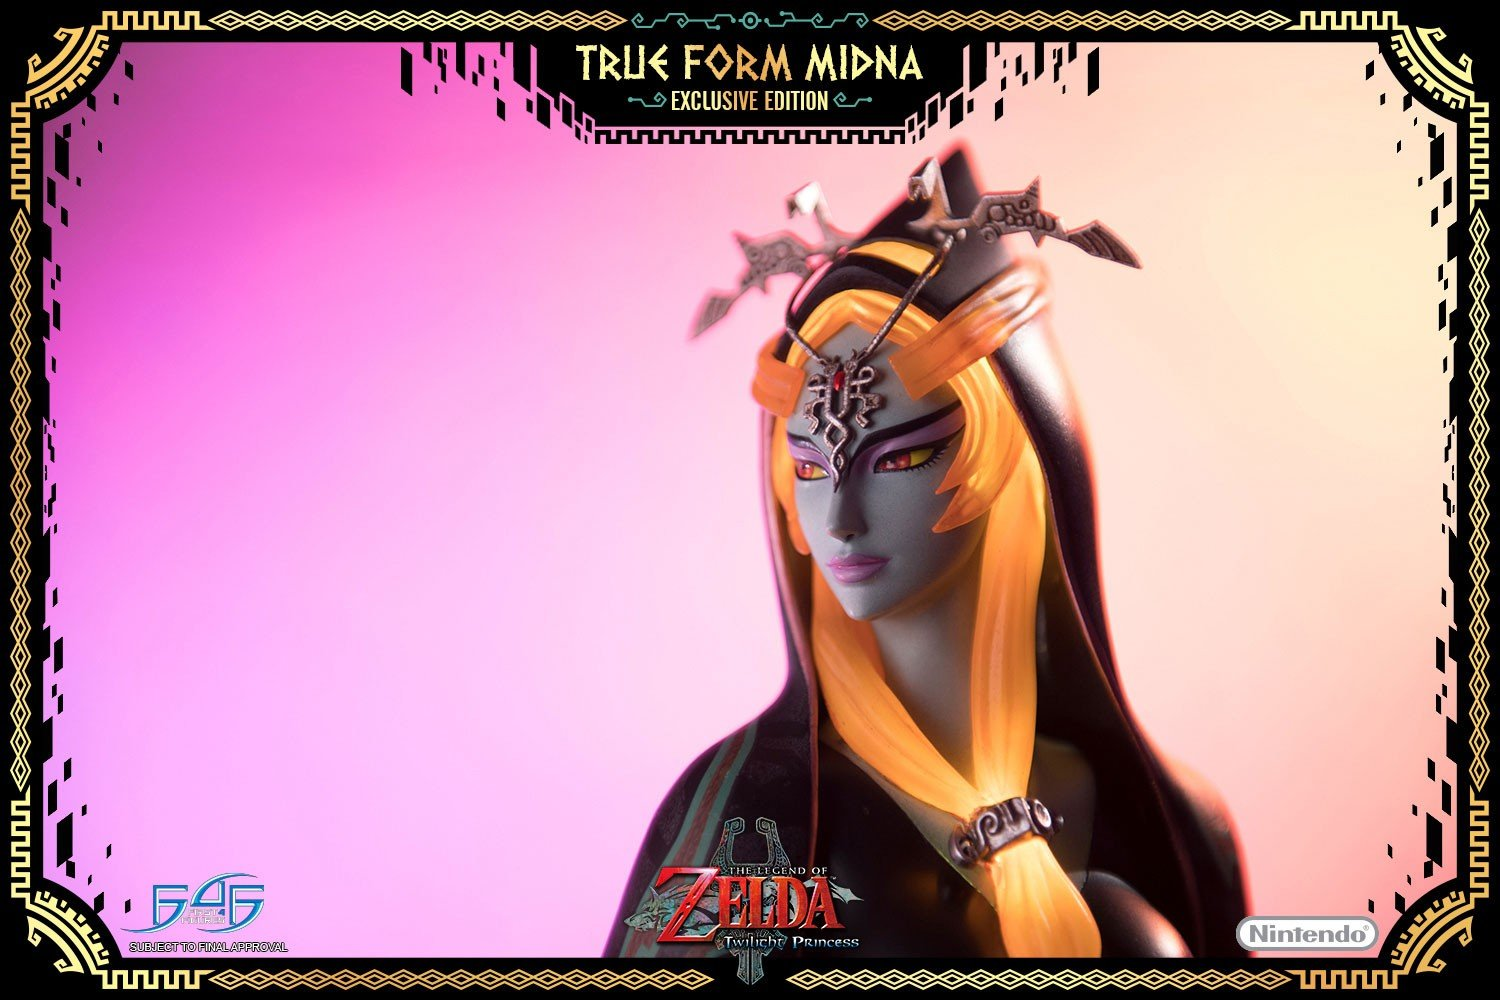 First 4 Figures is making an awesome (and expensive) True Midna statue screenshot